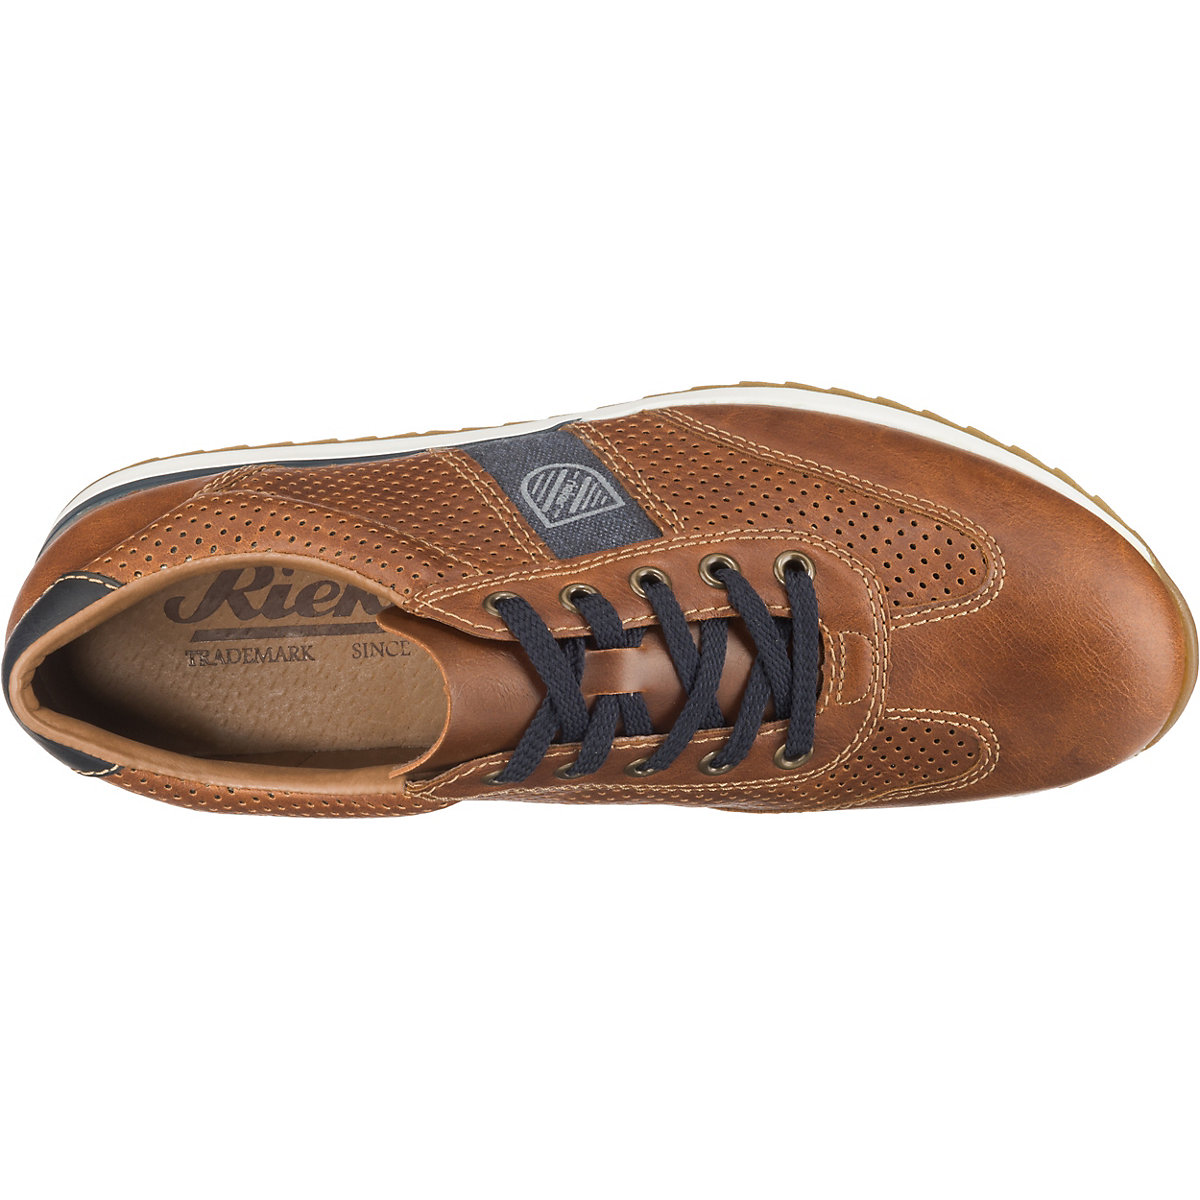 Rieker, Sneakers Low, Braun-kombi